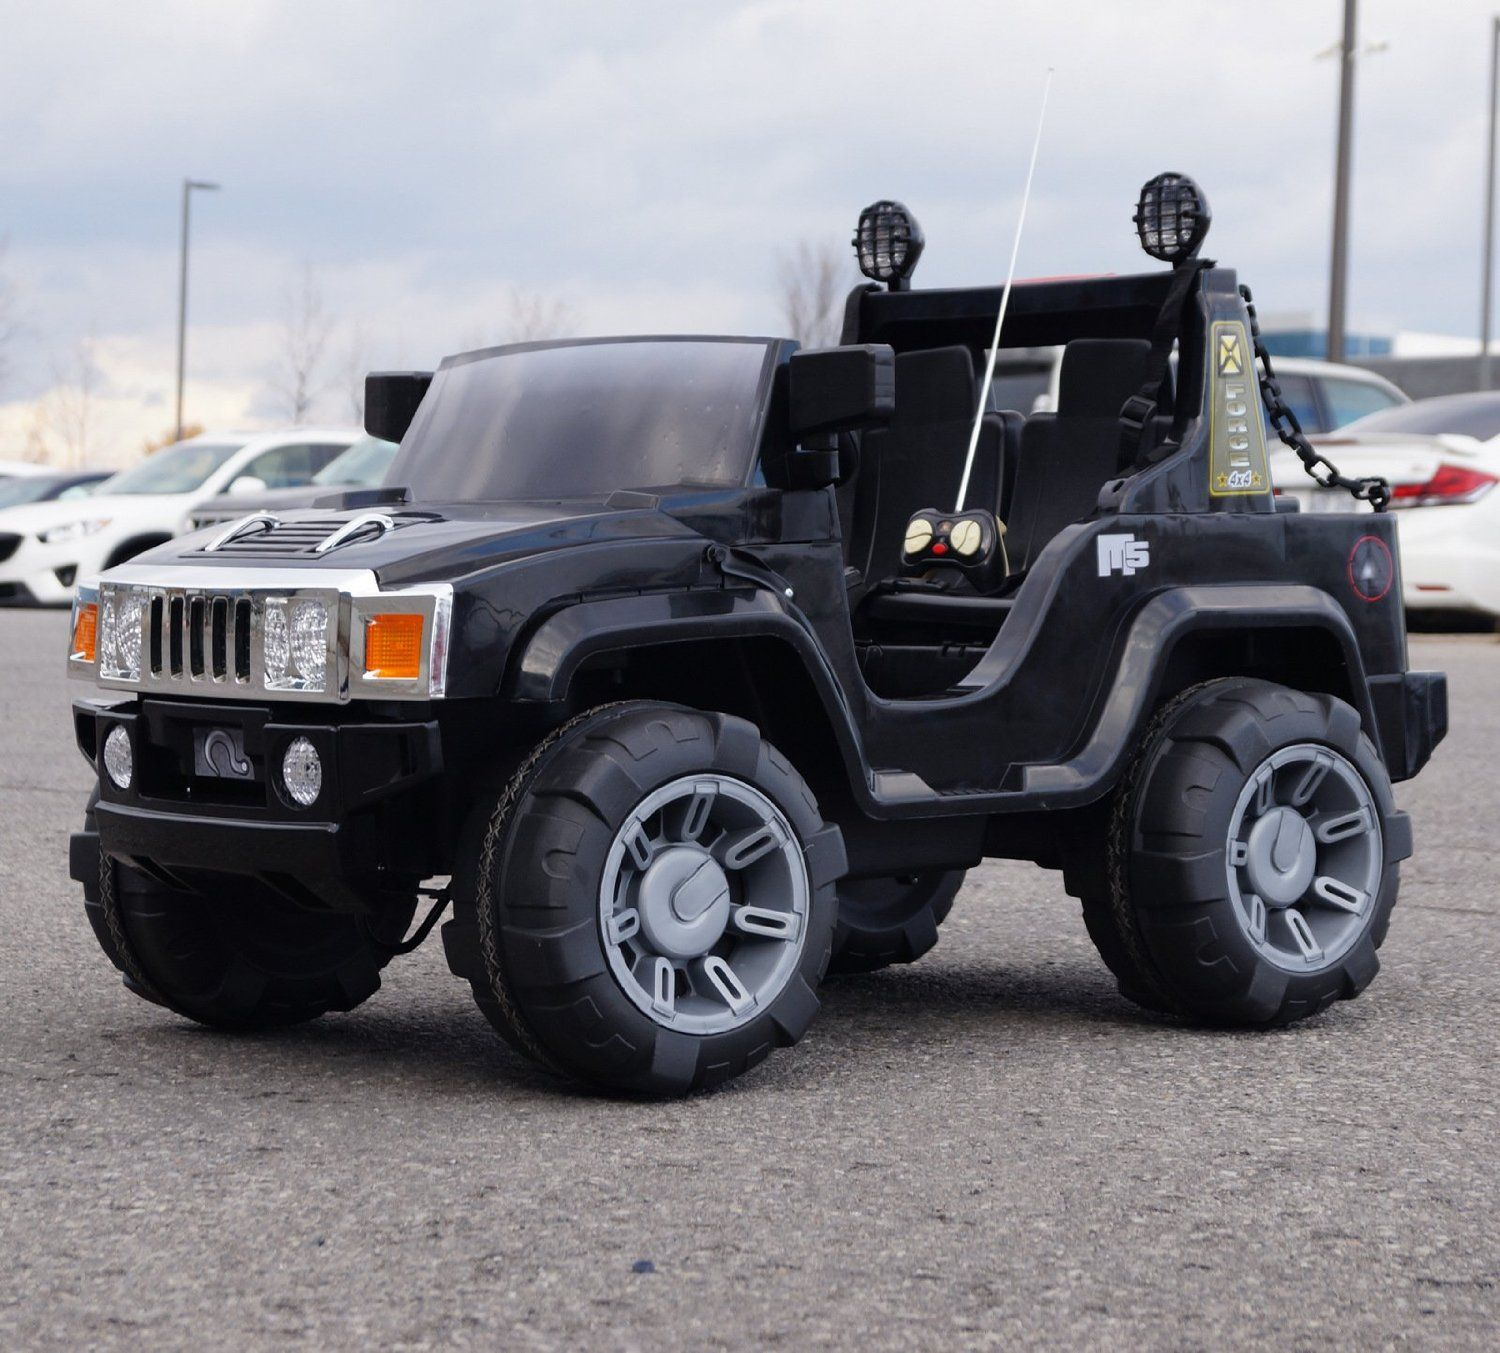 Hummer H2 A26 Ride On Car With Electric Remote Control List Price